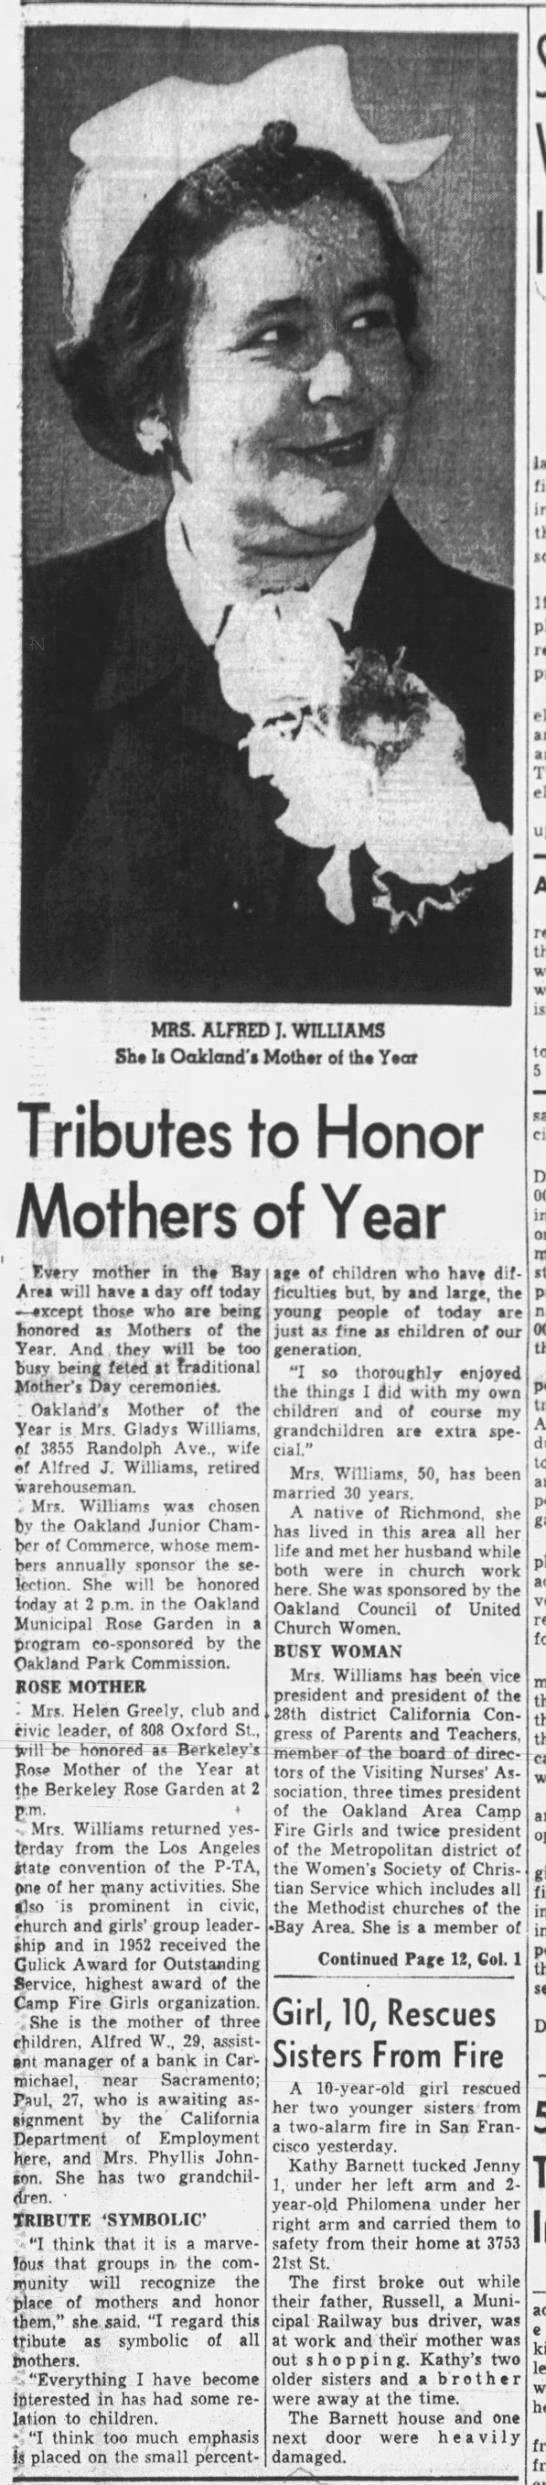 Mrs. Alfred Williams, Mother of the Year Dr. Orley See added to Pioneer Walk p1 -